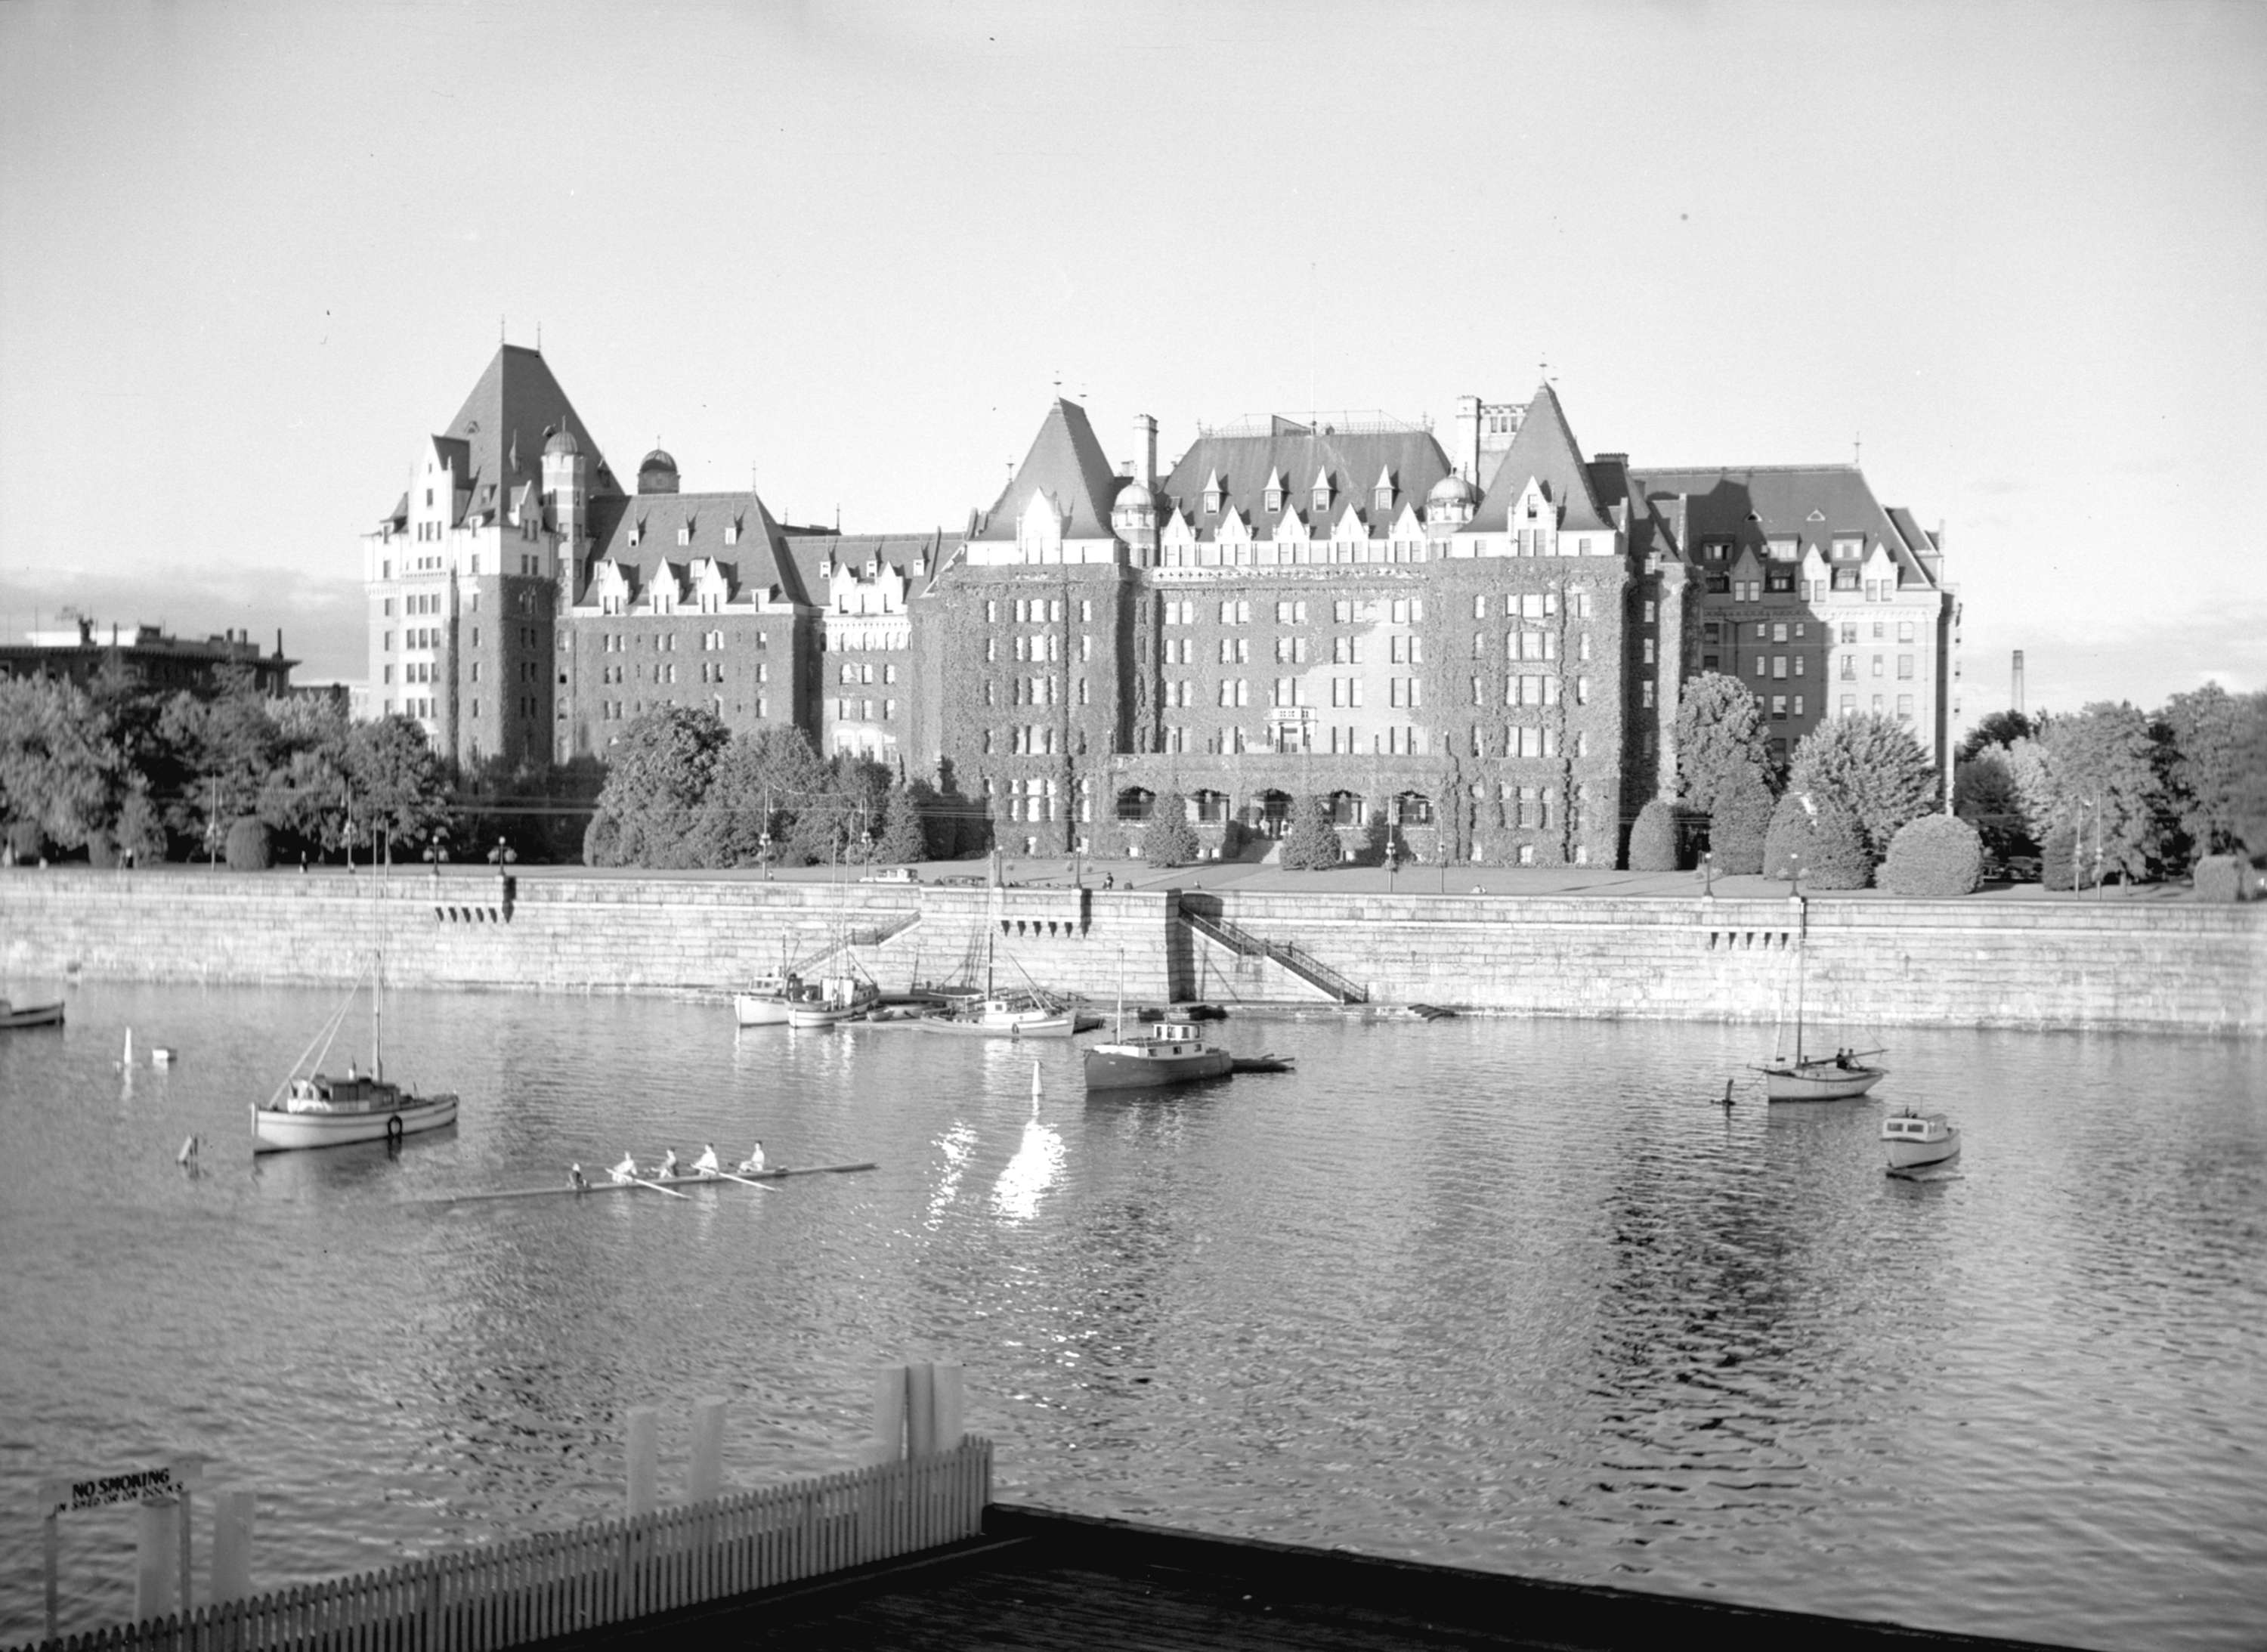 1940 Image of the Empress Hotel